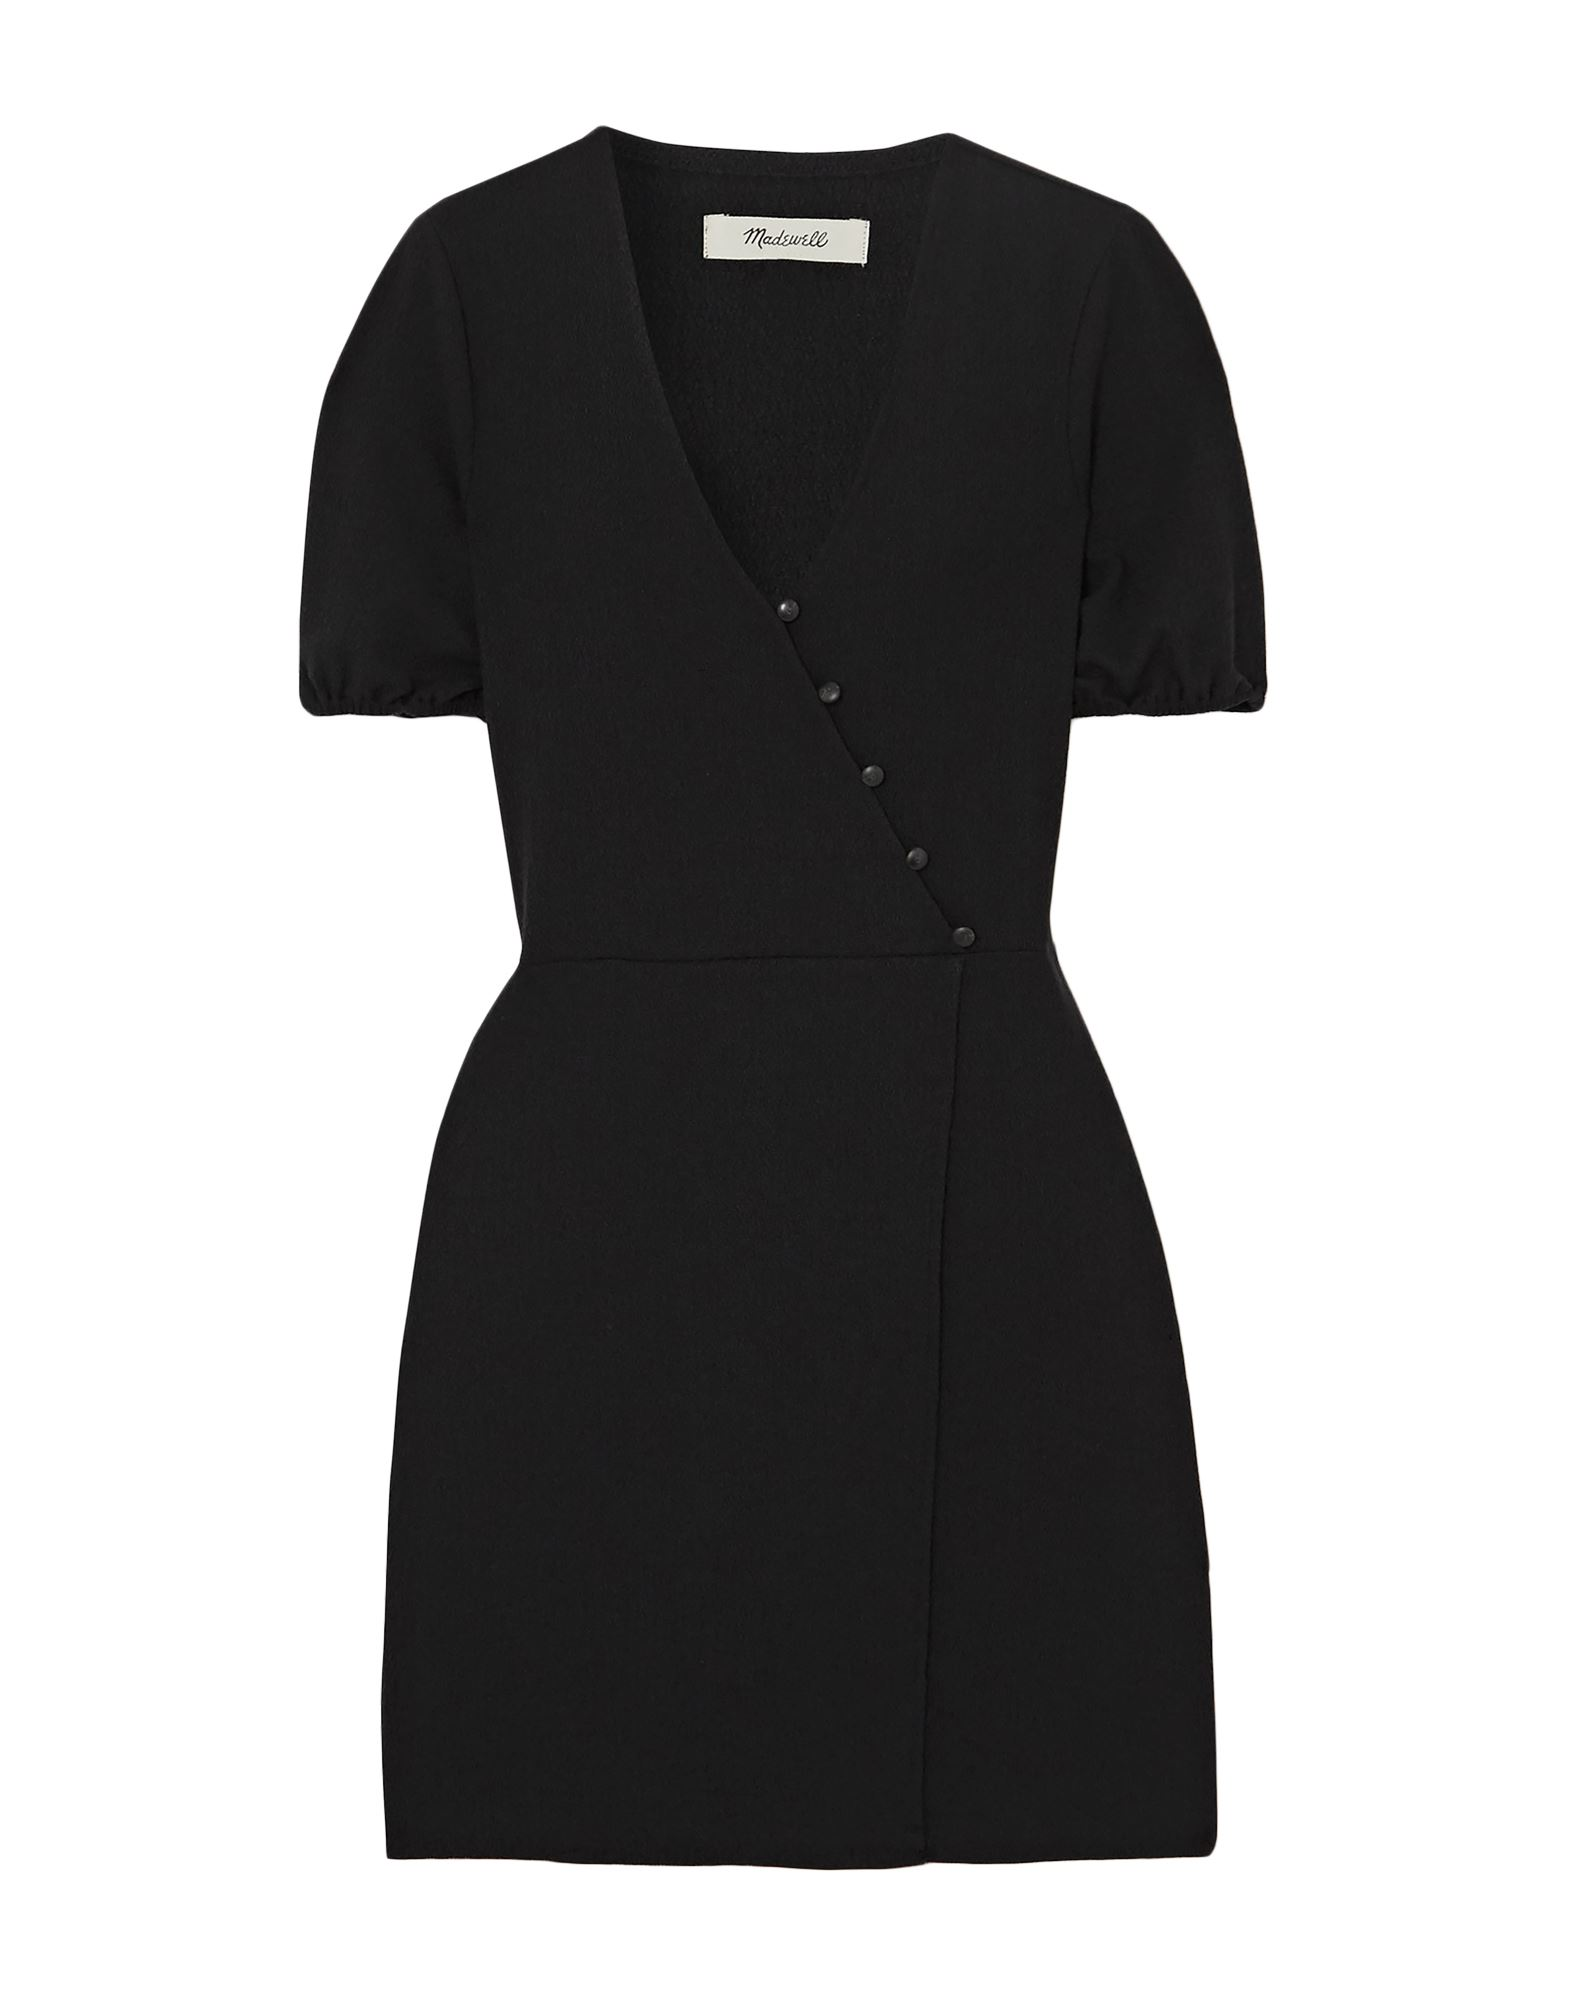 MADEWELL Short dresses. knitted, no appliqués, basic solid color, deep neckline, short sleeves, no pockets, front closure, button closing, unlined, stretch. 49% Polyester, 49% Viscose, 2% Elastane